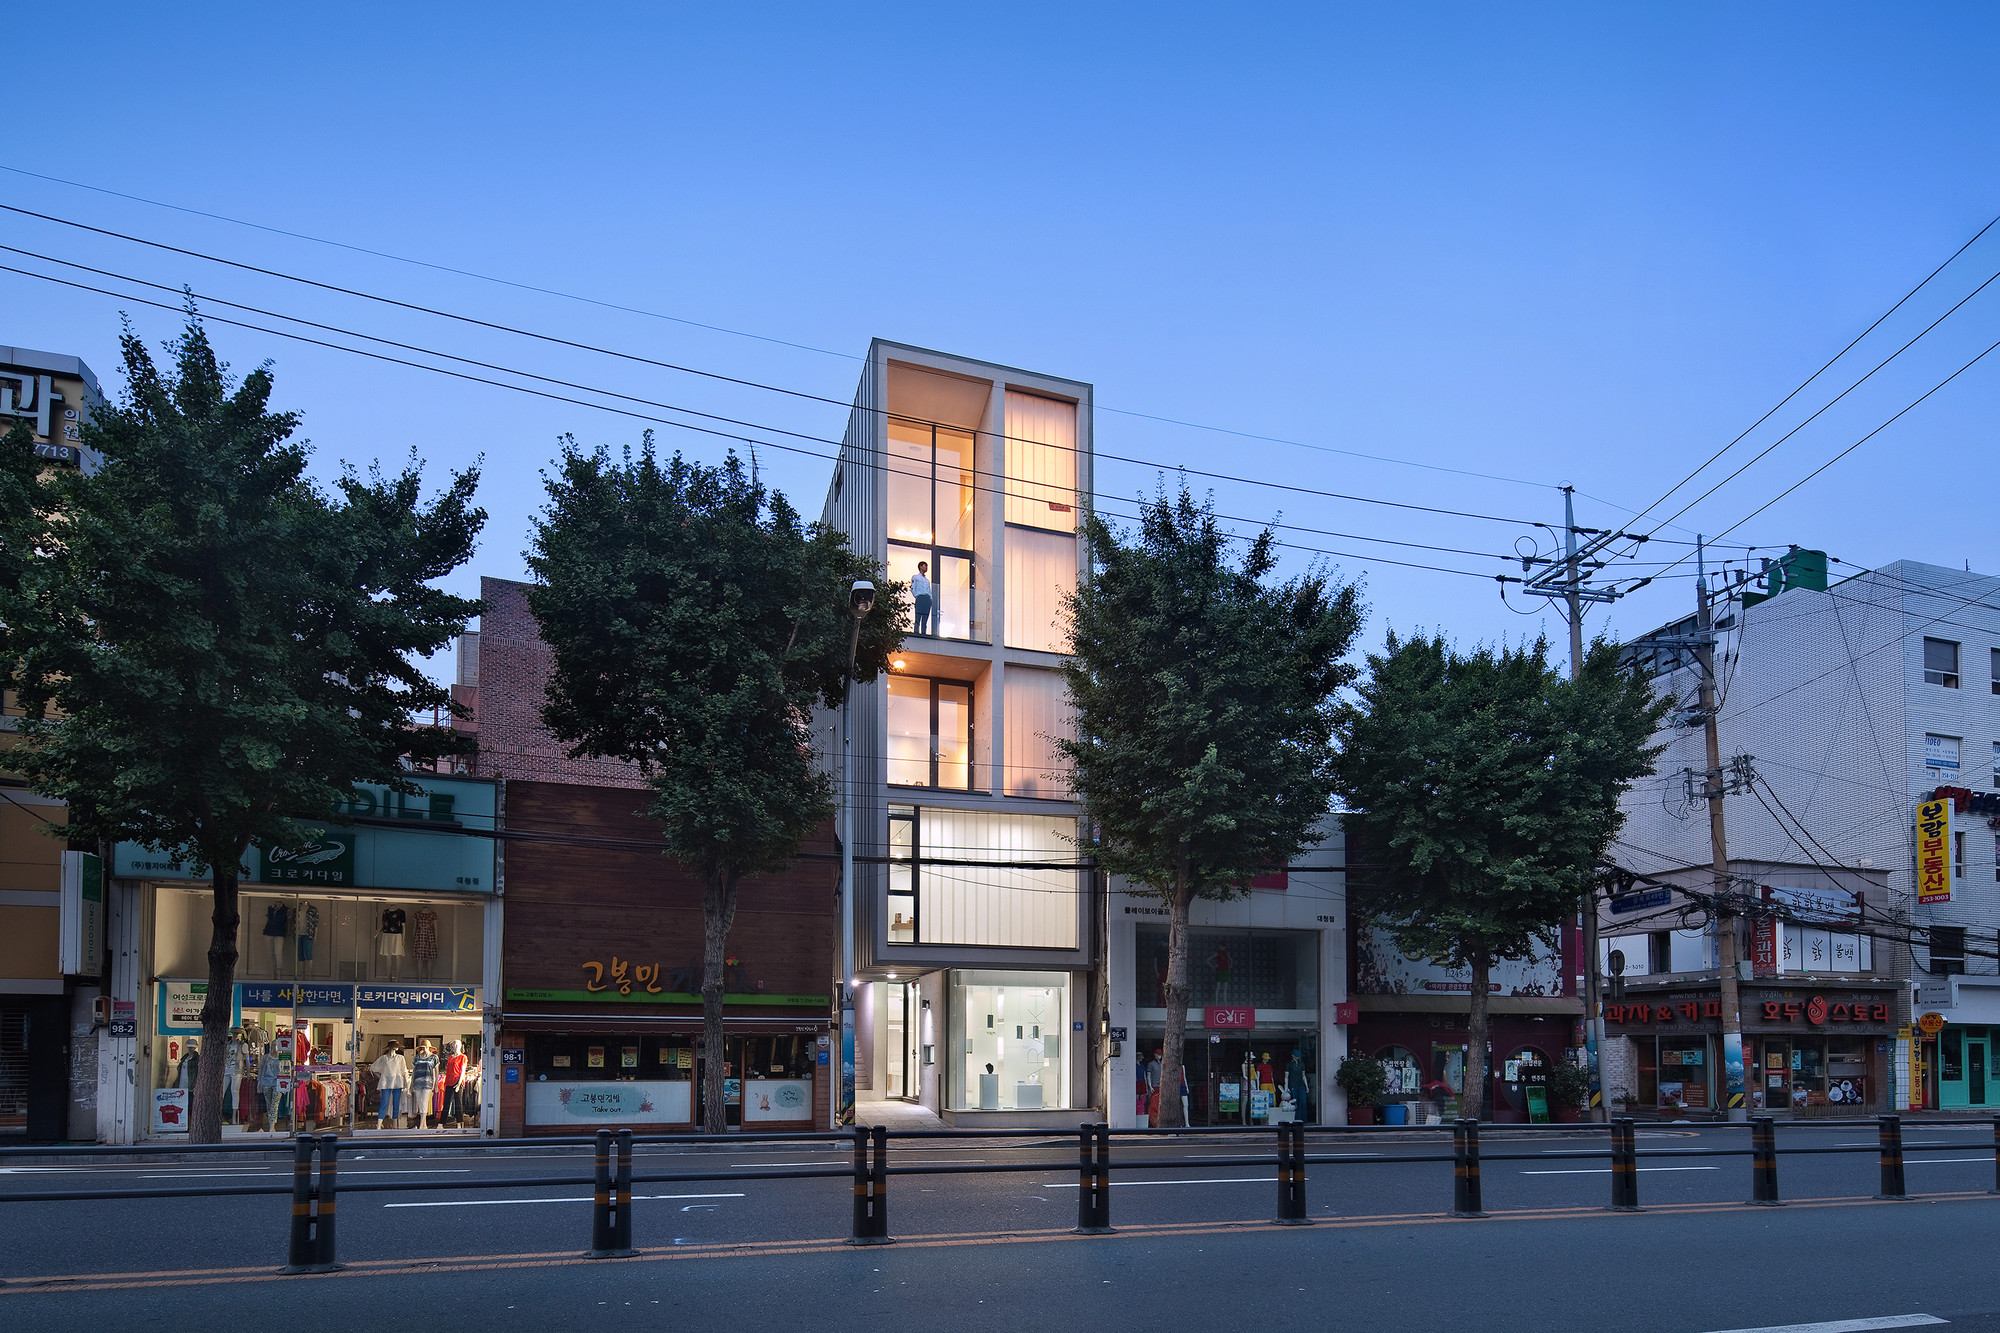 Sensational 5X17 Daecheong Dong Small House Jmy Architects Archdaily Largest Home Design Picture Inspirations Pitcheantrous